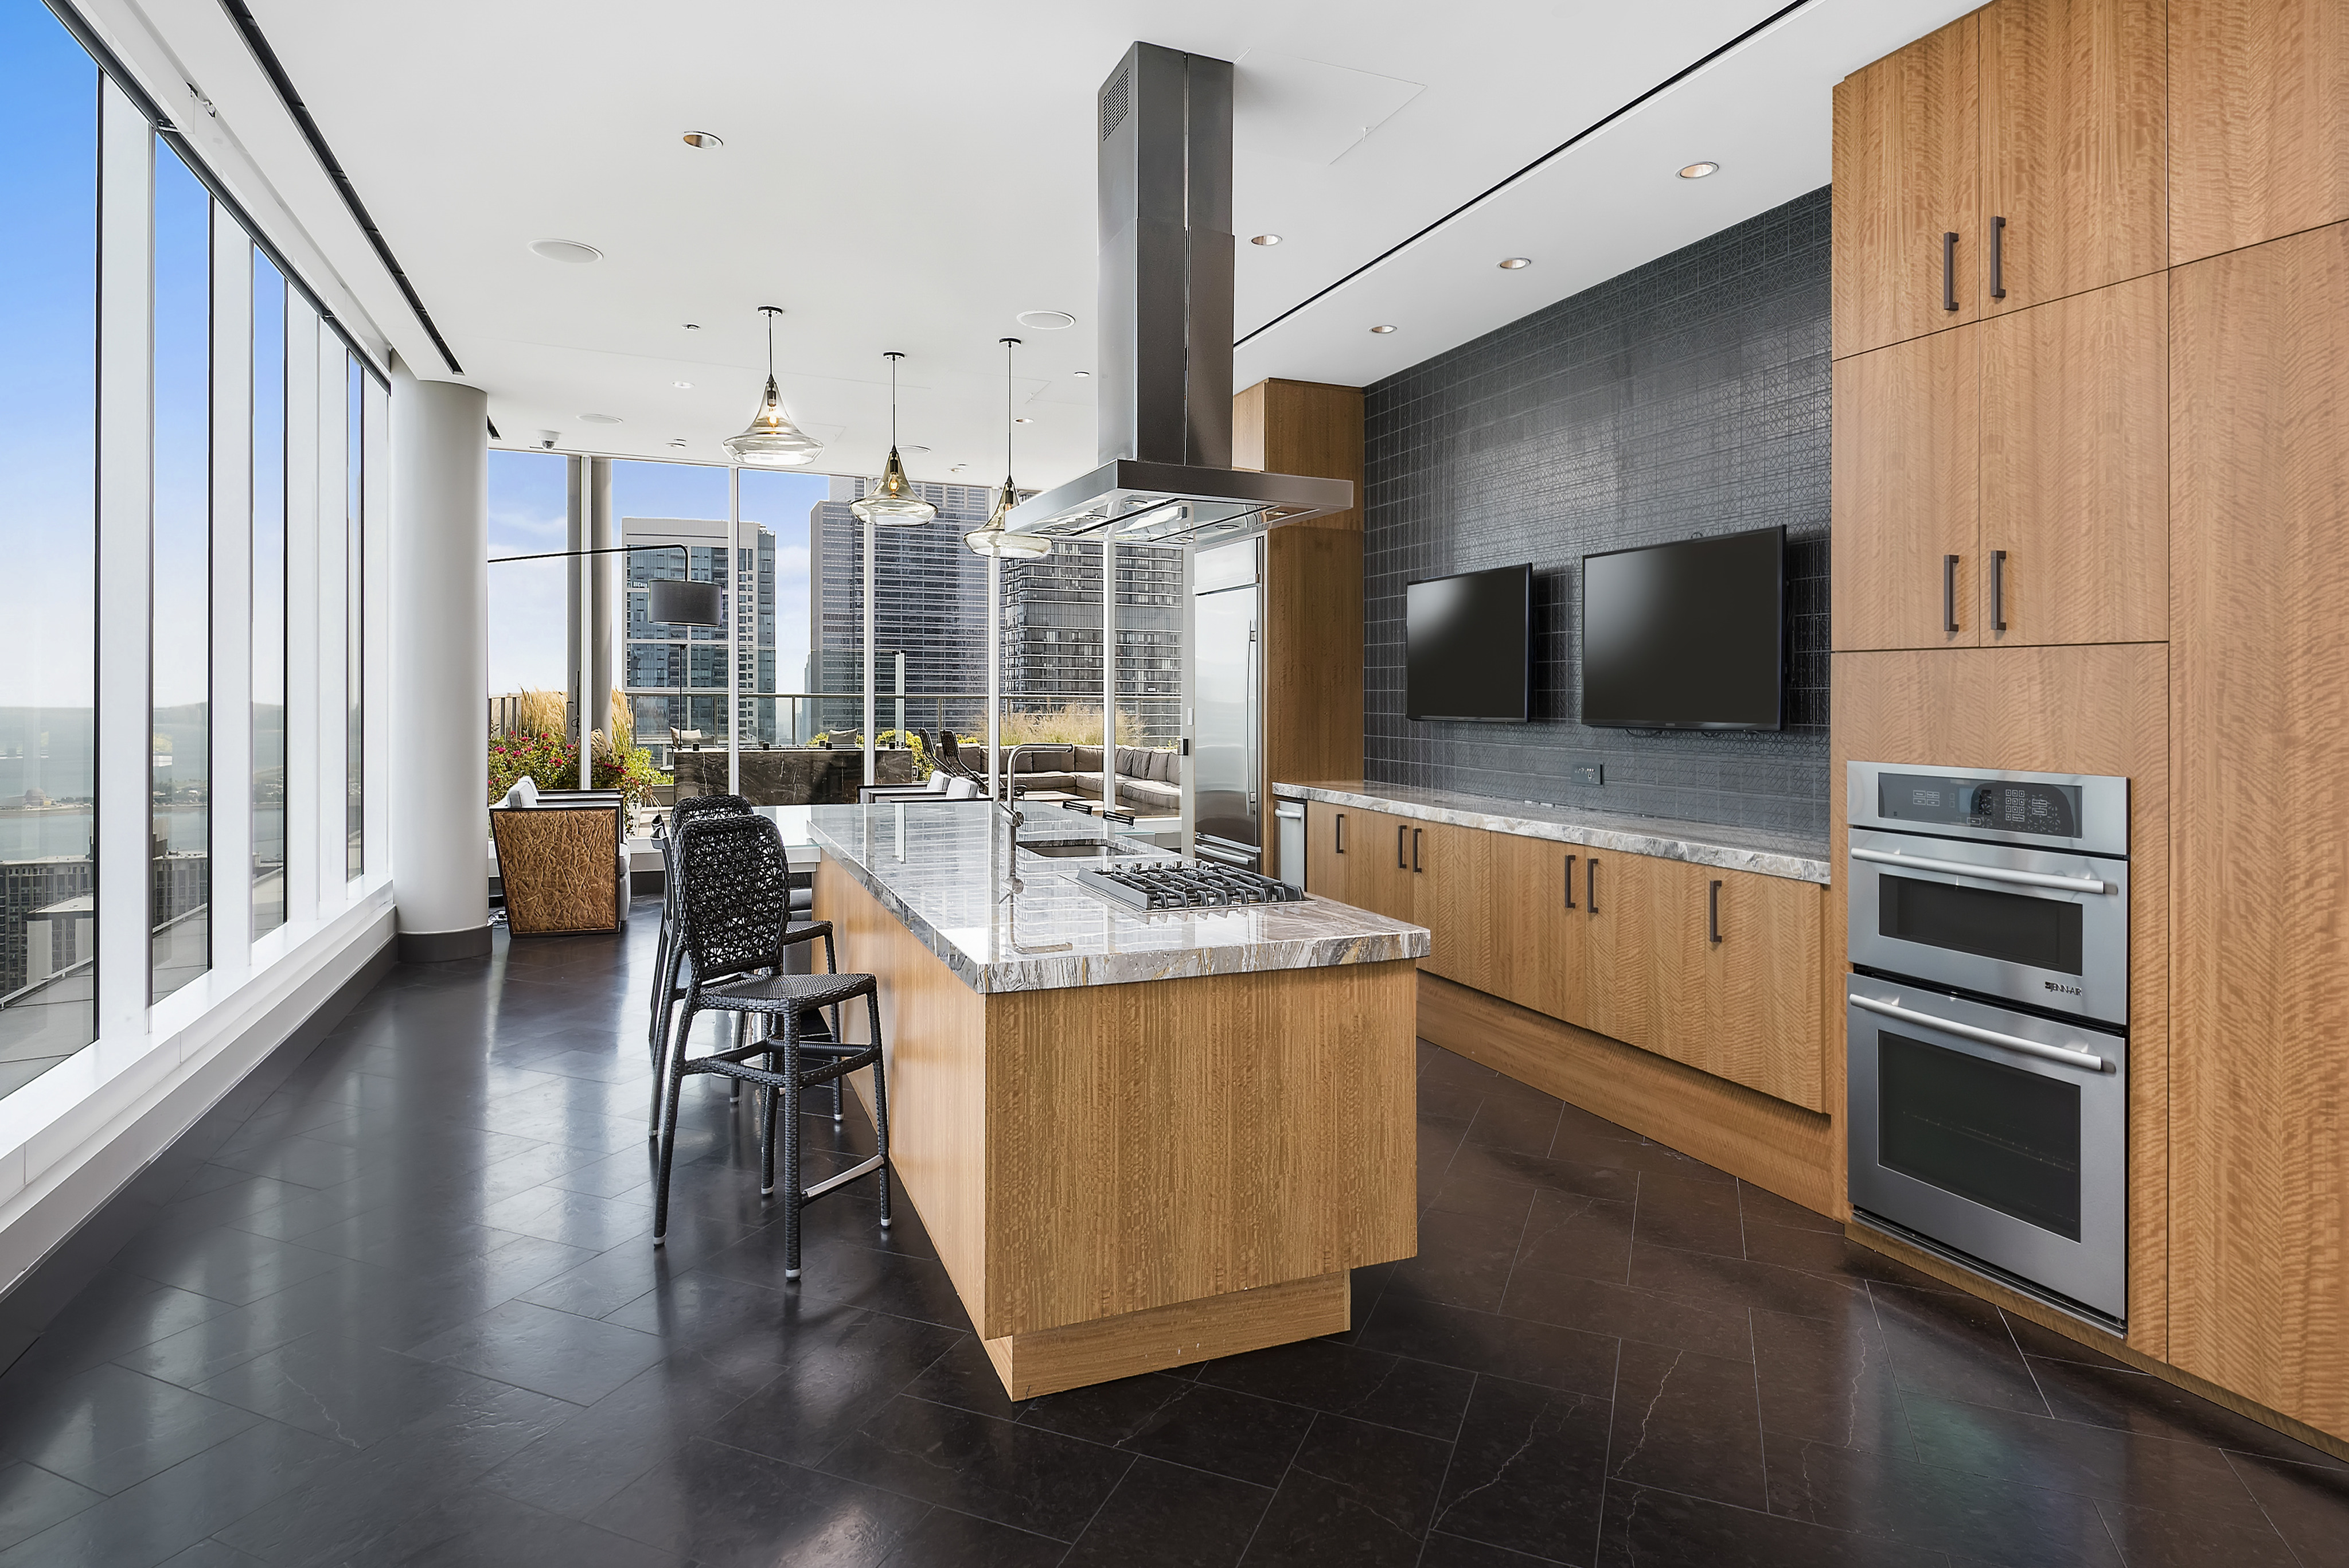 Rooftop sky lounge with a catering kitchen, flat-screen TVs, an island and floor-to-ceiling windows with a city view